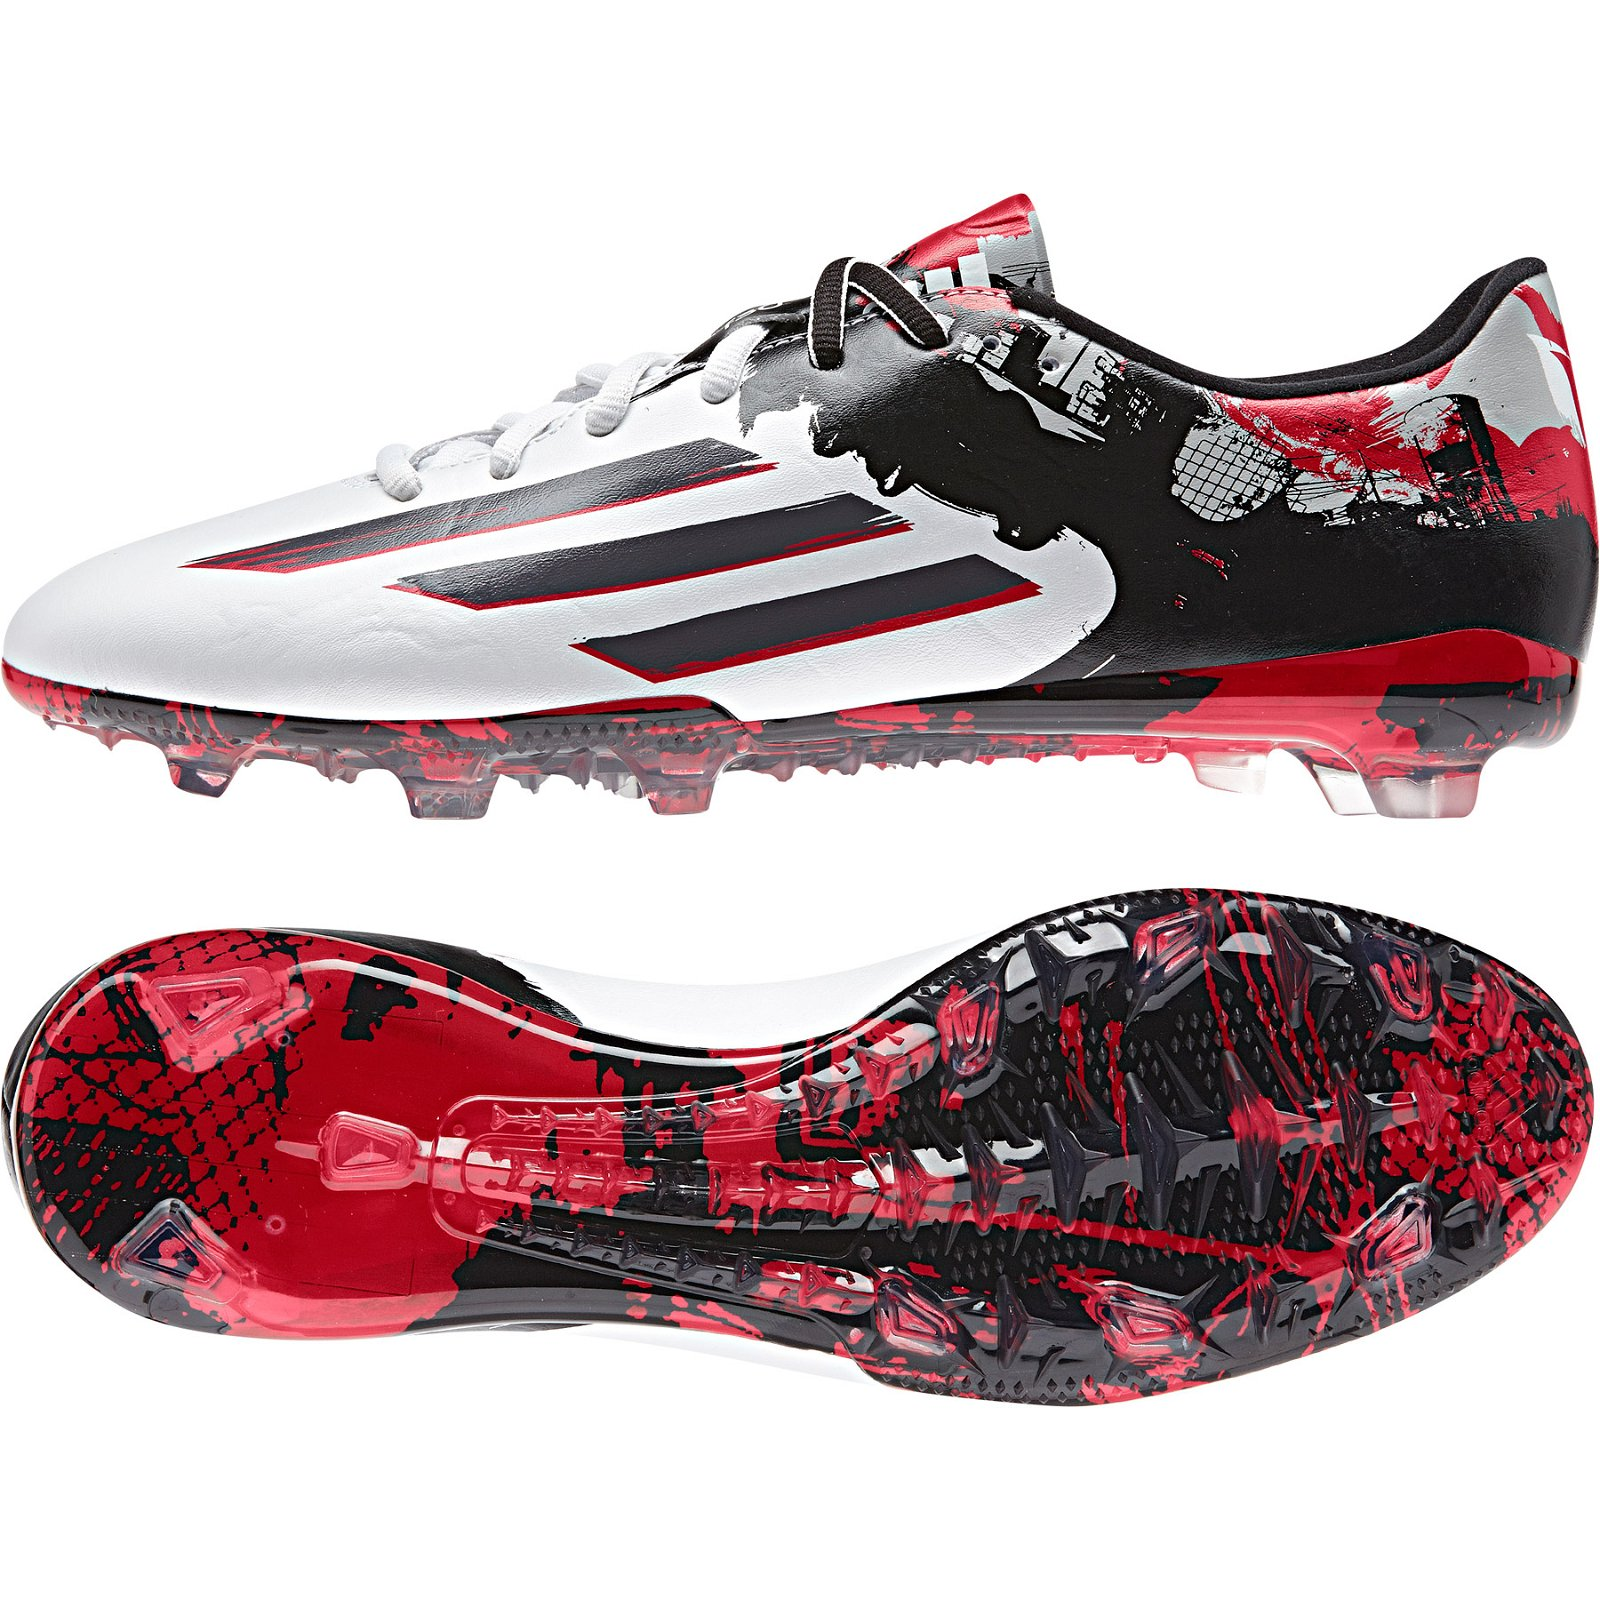 Cool soccer shoes messi